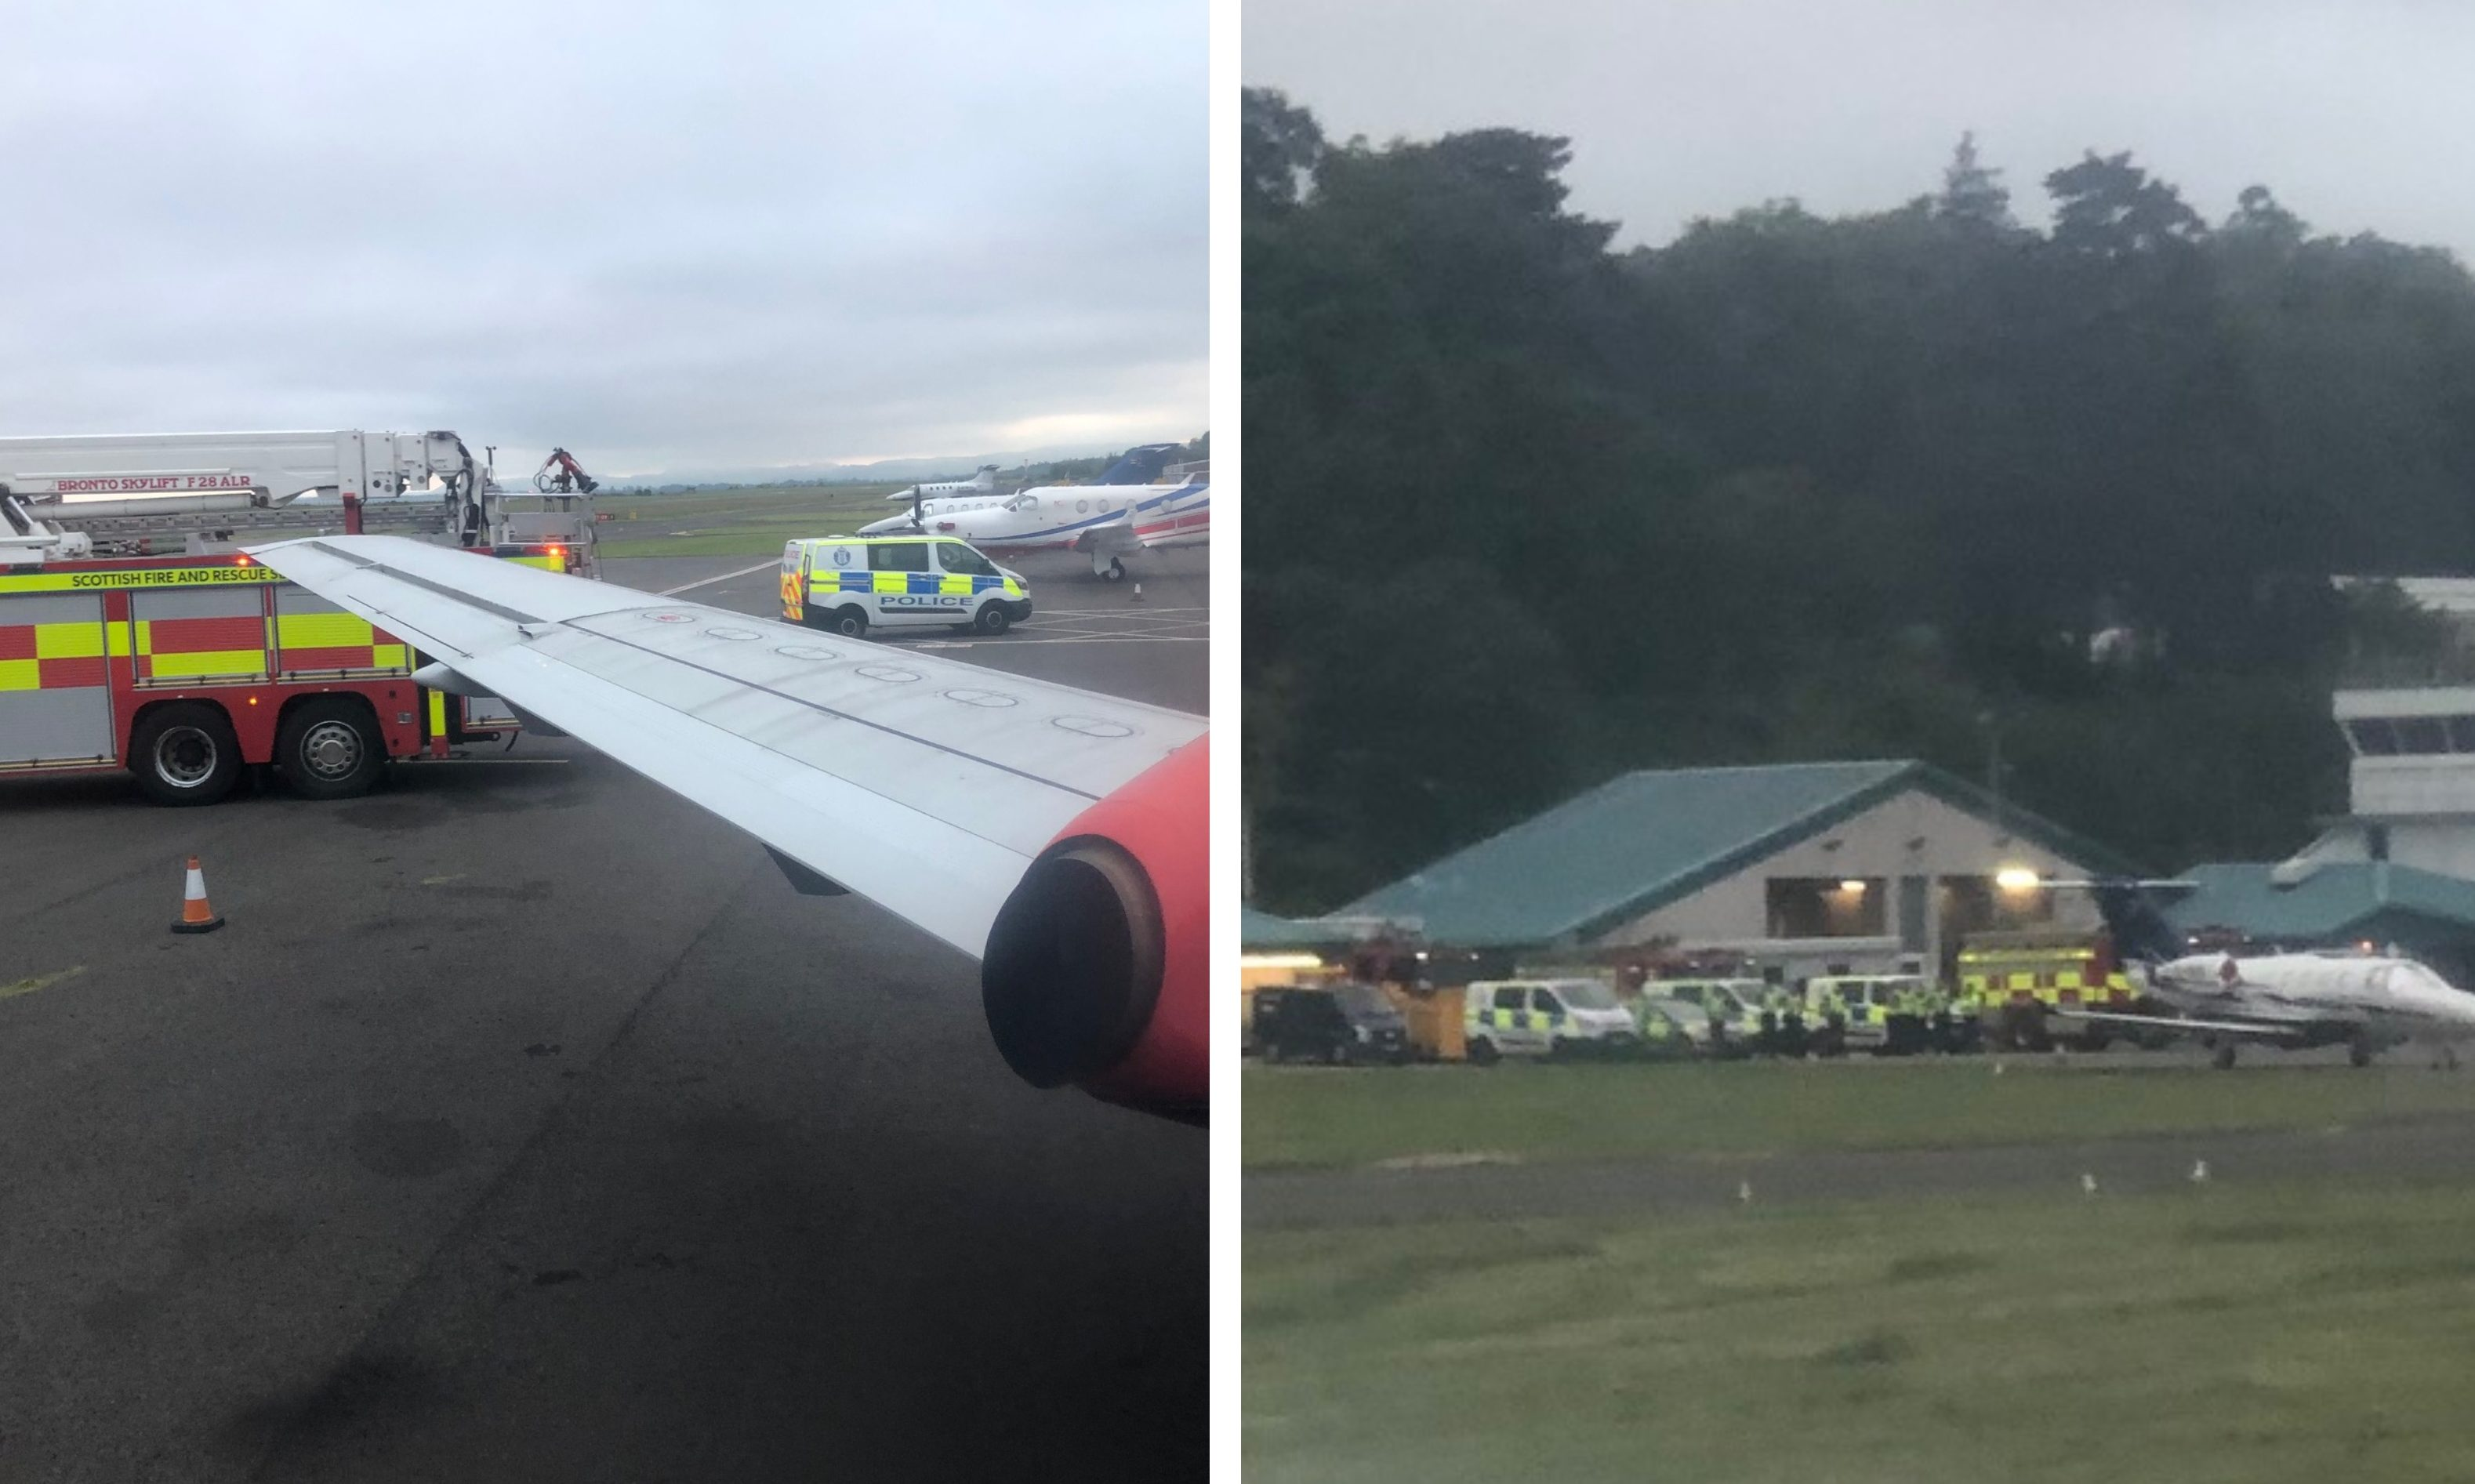 Emergency services at Dundee Airport as the plane lands Pic: Chris Phin